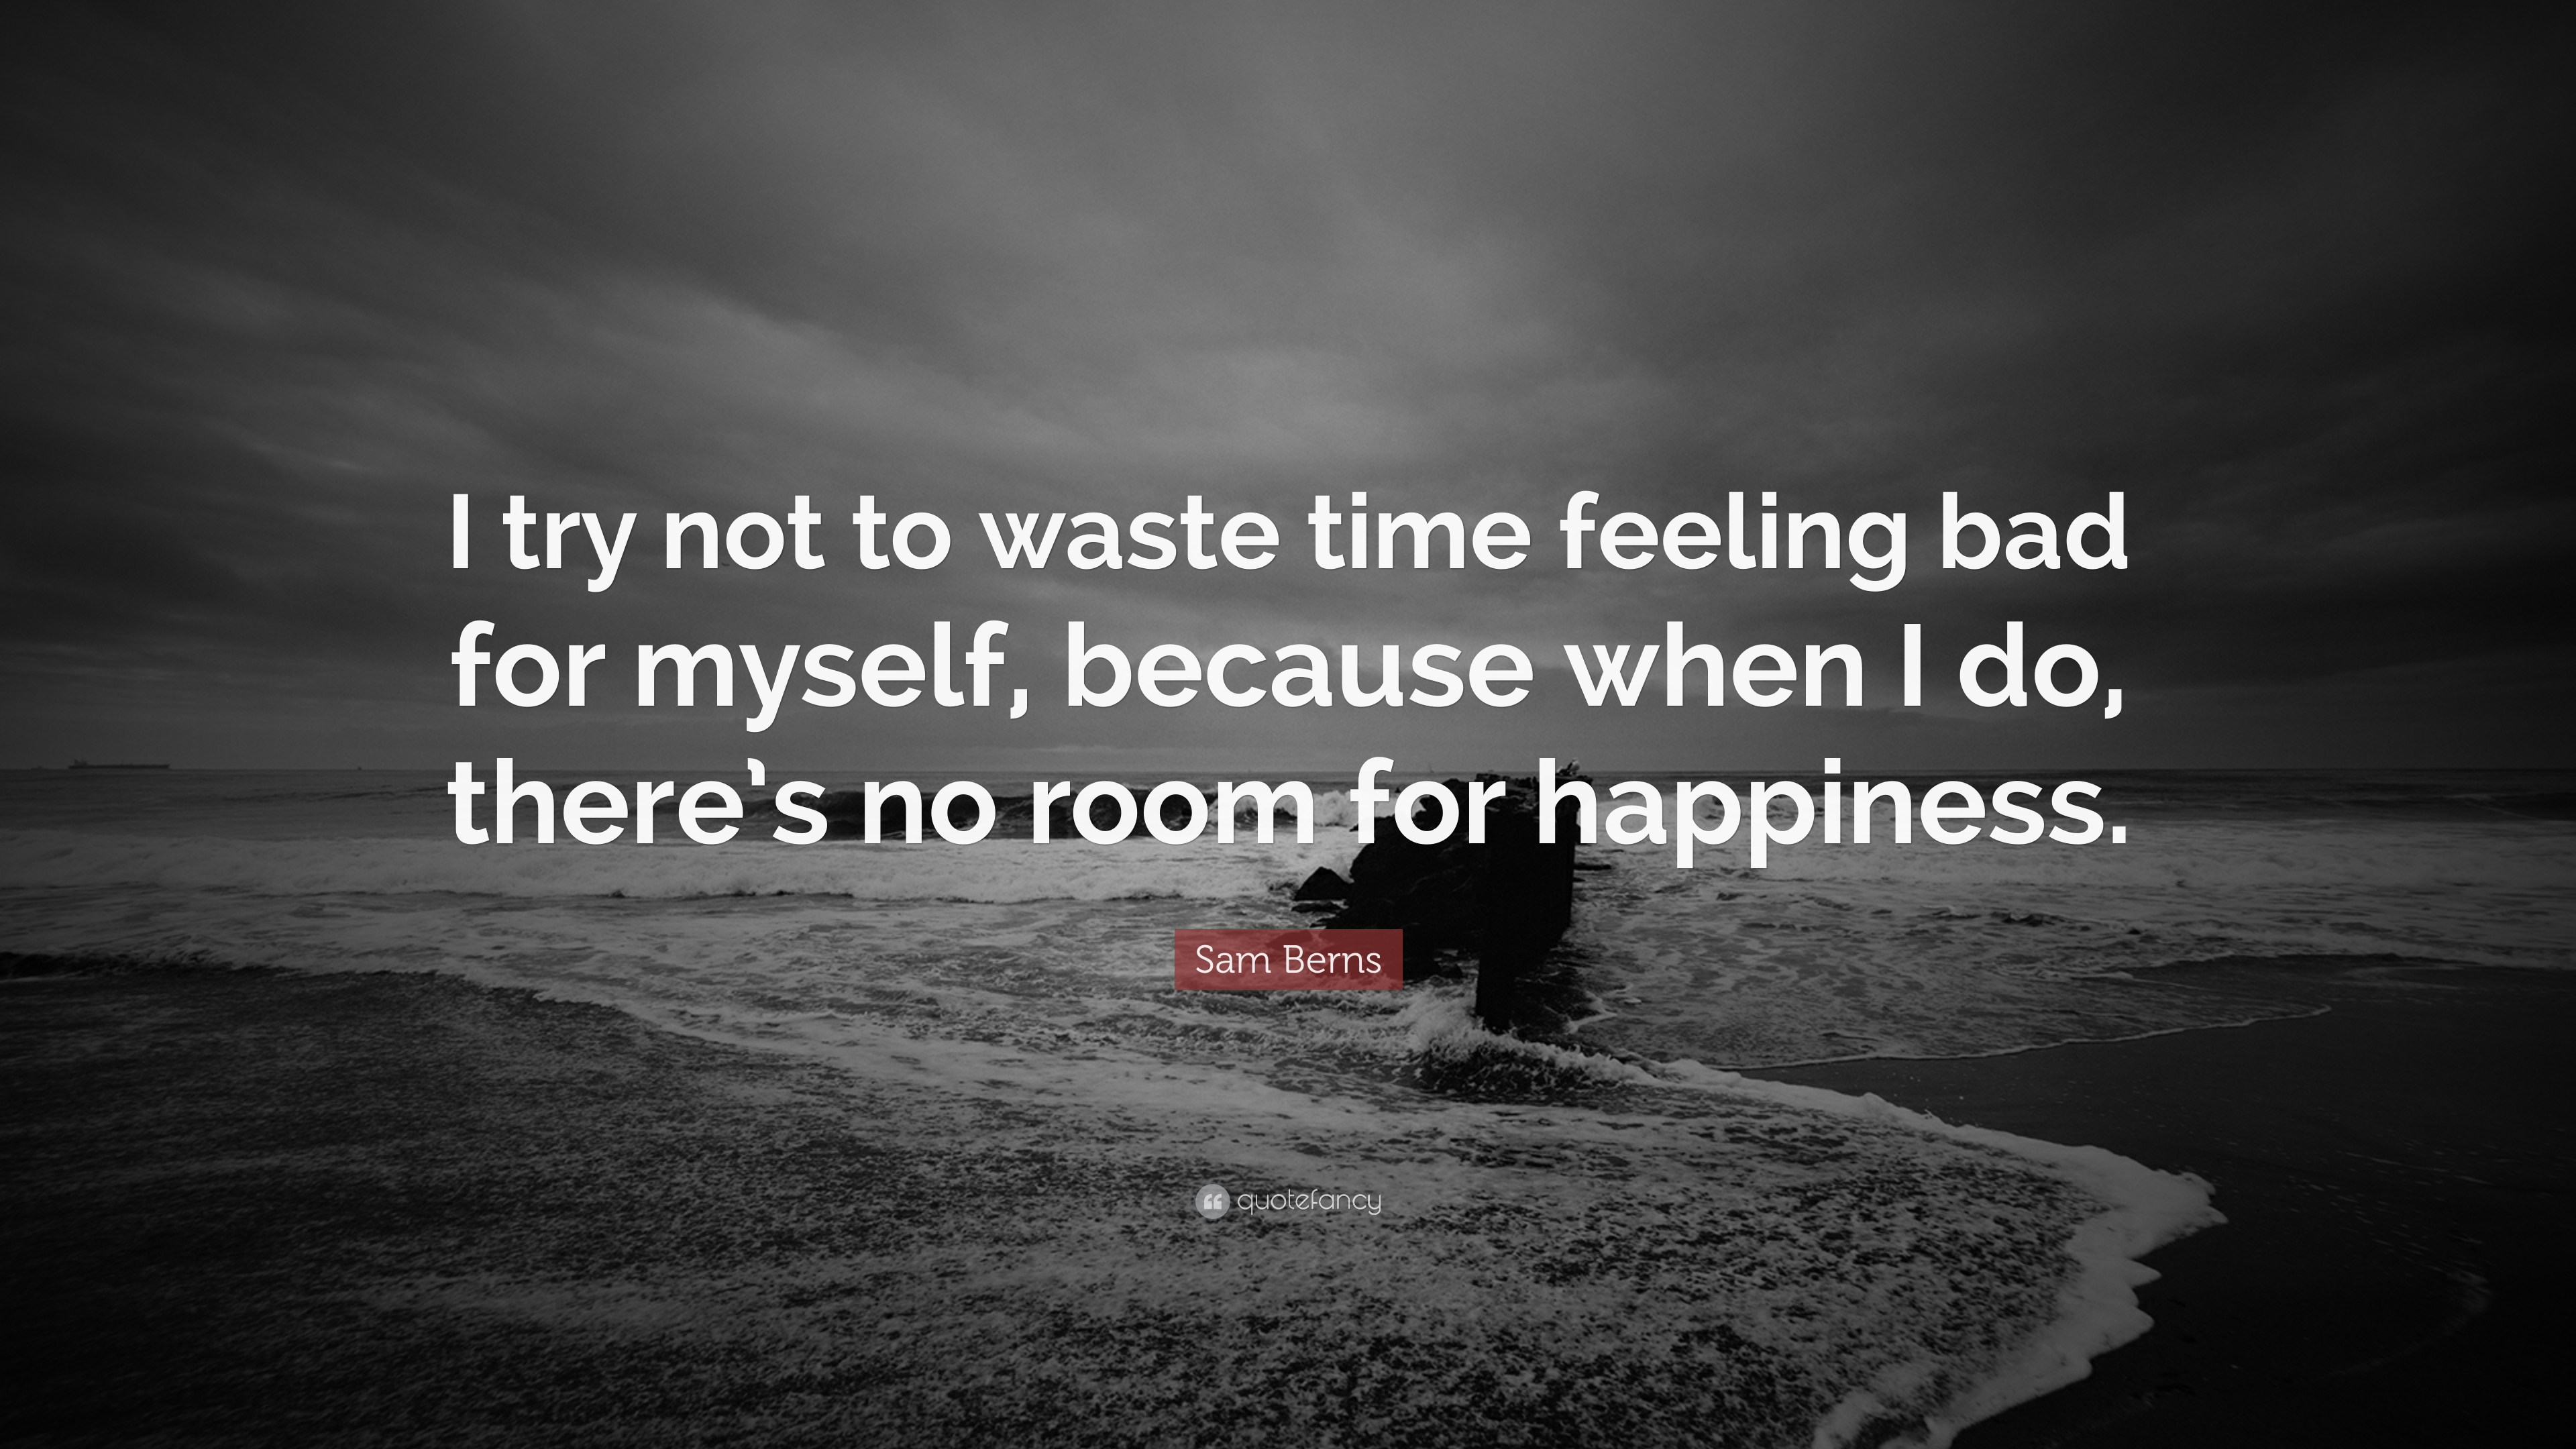 Sam Berns Quote I Try Not To Waste Time Feeling Bad For Myself Because When I Do There S No Room For Happiness 7 Wallpapers Quotefancy